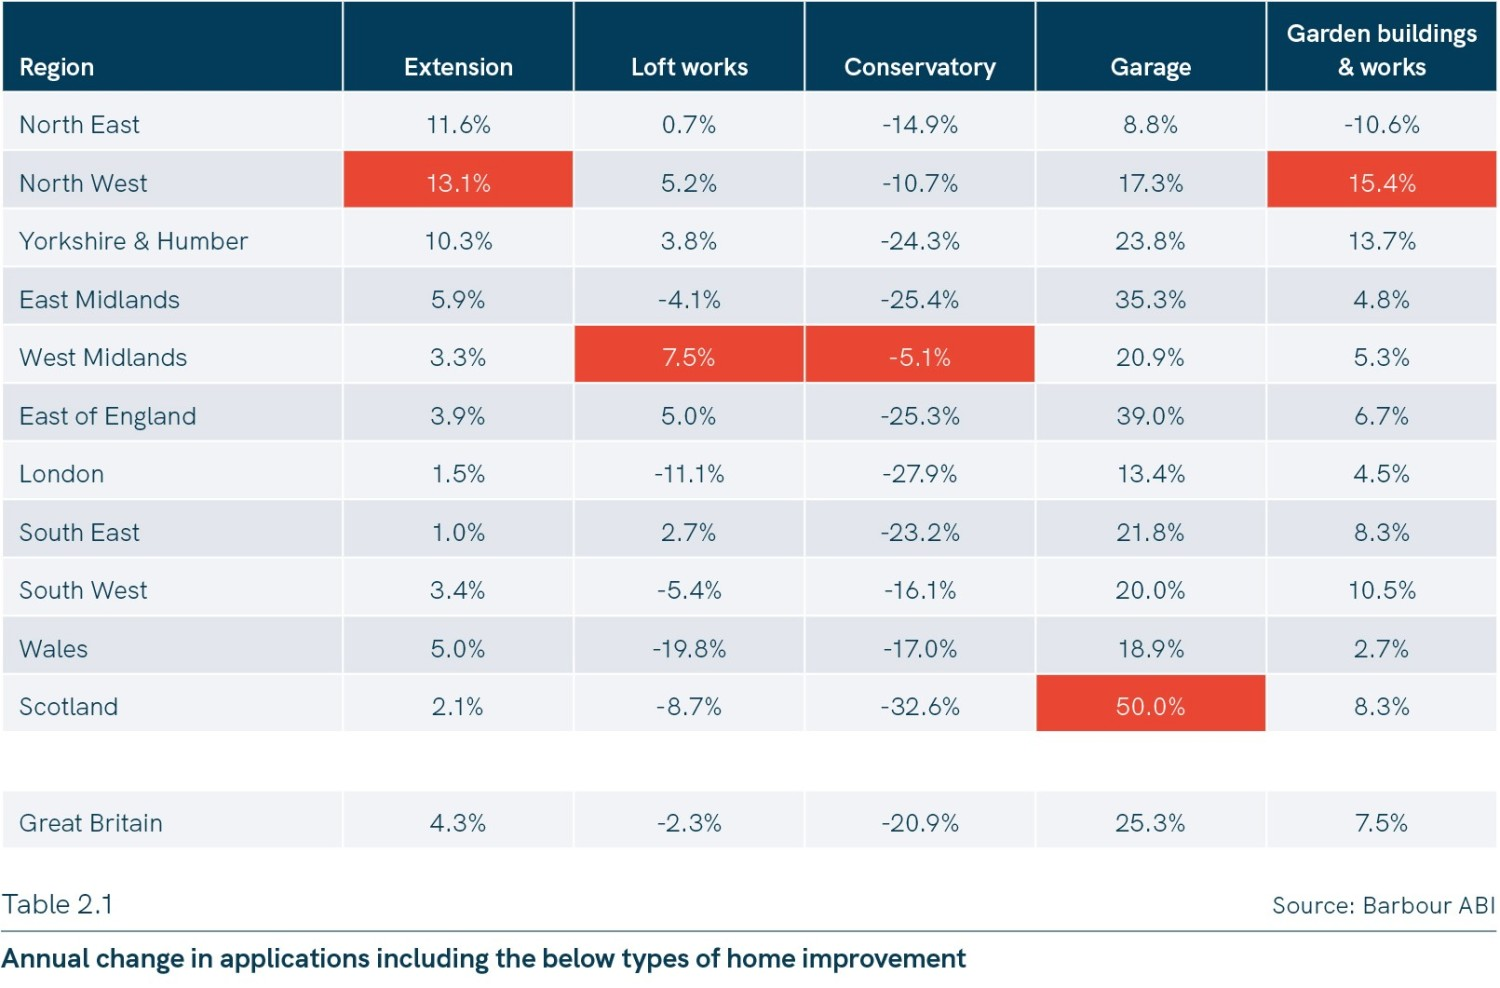 Barbour Home improvements table showing most popular home improvements by regions